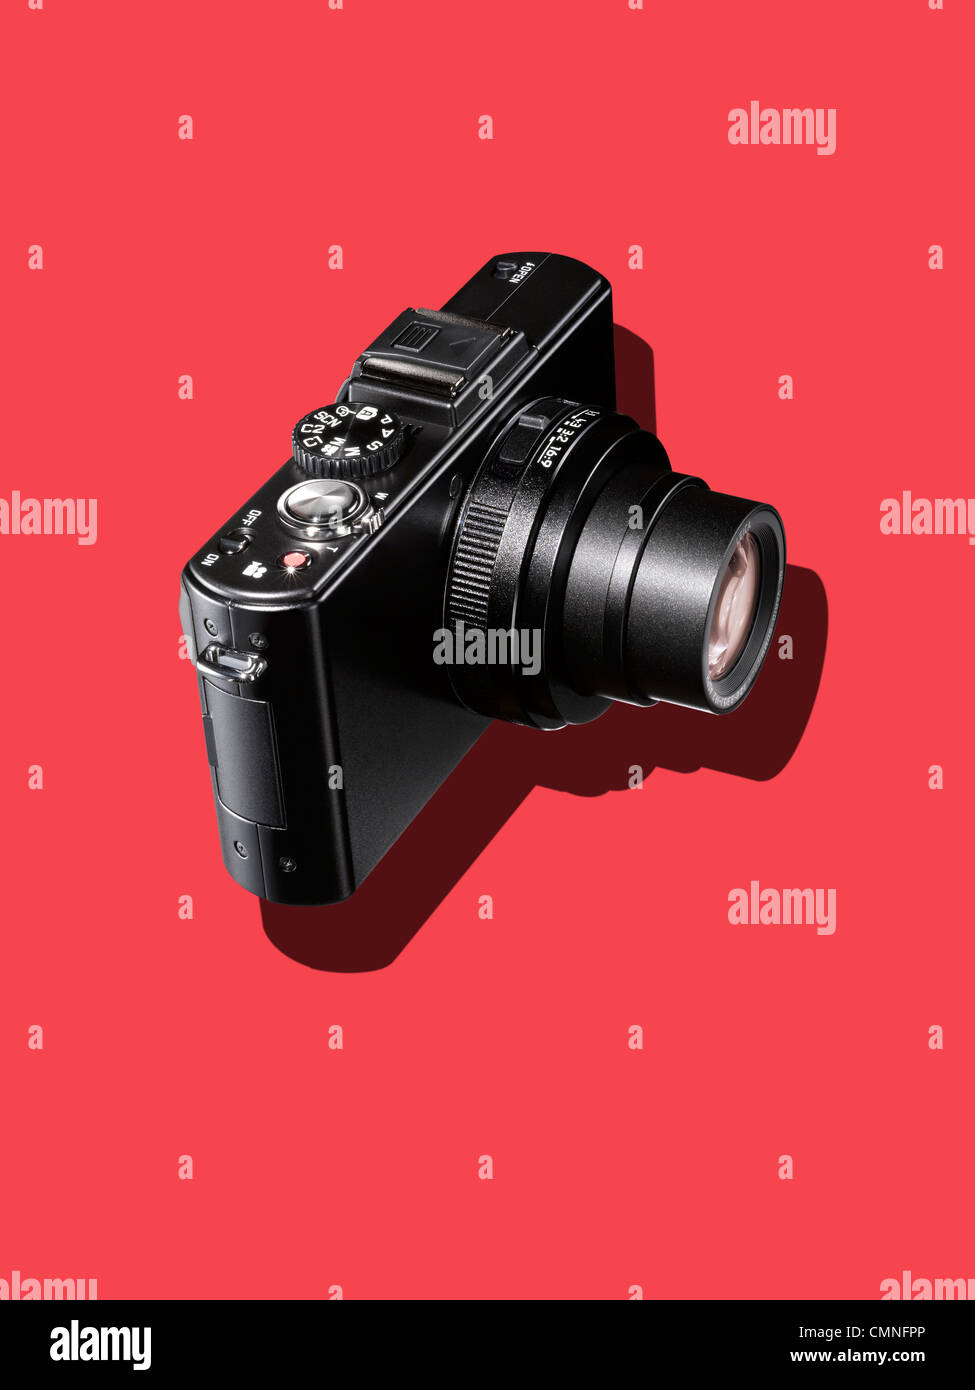 Un appareil photo noir sur fond rouge Photo Stock